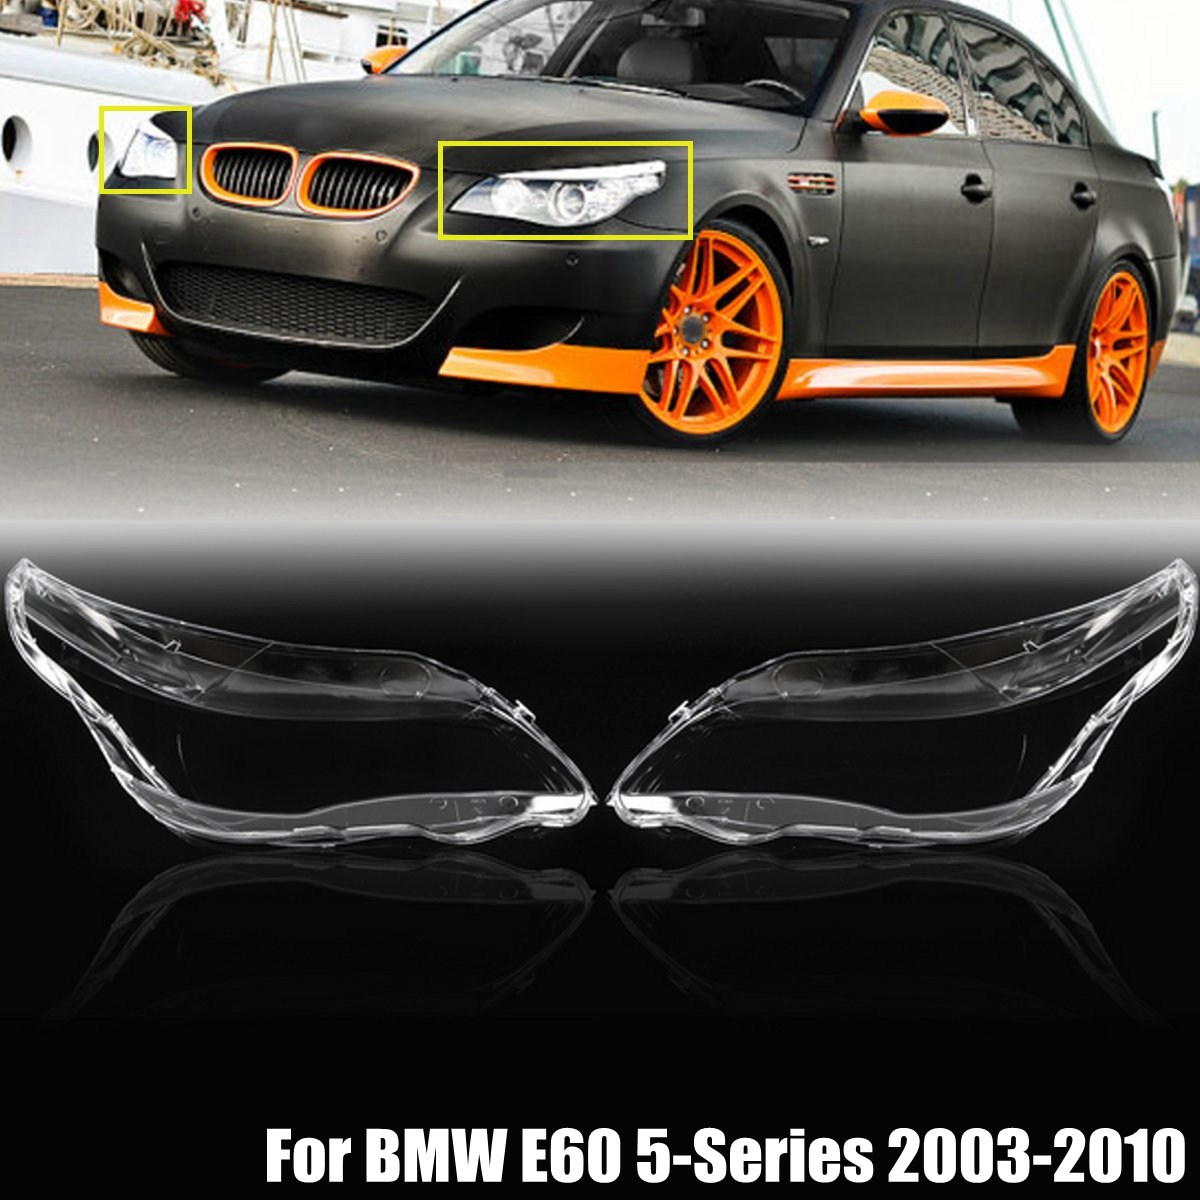 2Pcs Car Headlight Cover Headlamp Lens Covers For BMW 5-Series M5 E60 E61 525i 530i 545i 550i 2003 2004 2005 2006-2010 for bmw e60 e61 lci 525i 528i 530i 535i 545i 550i m5 xenon headlight excellent drl ultra bright smd led angel eyes kit